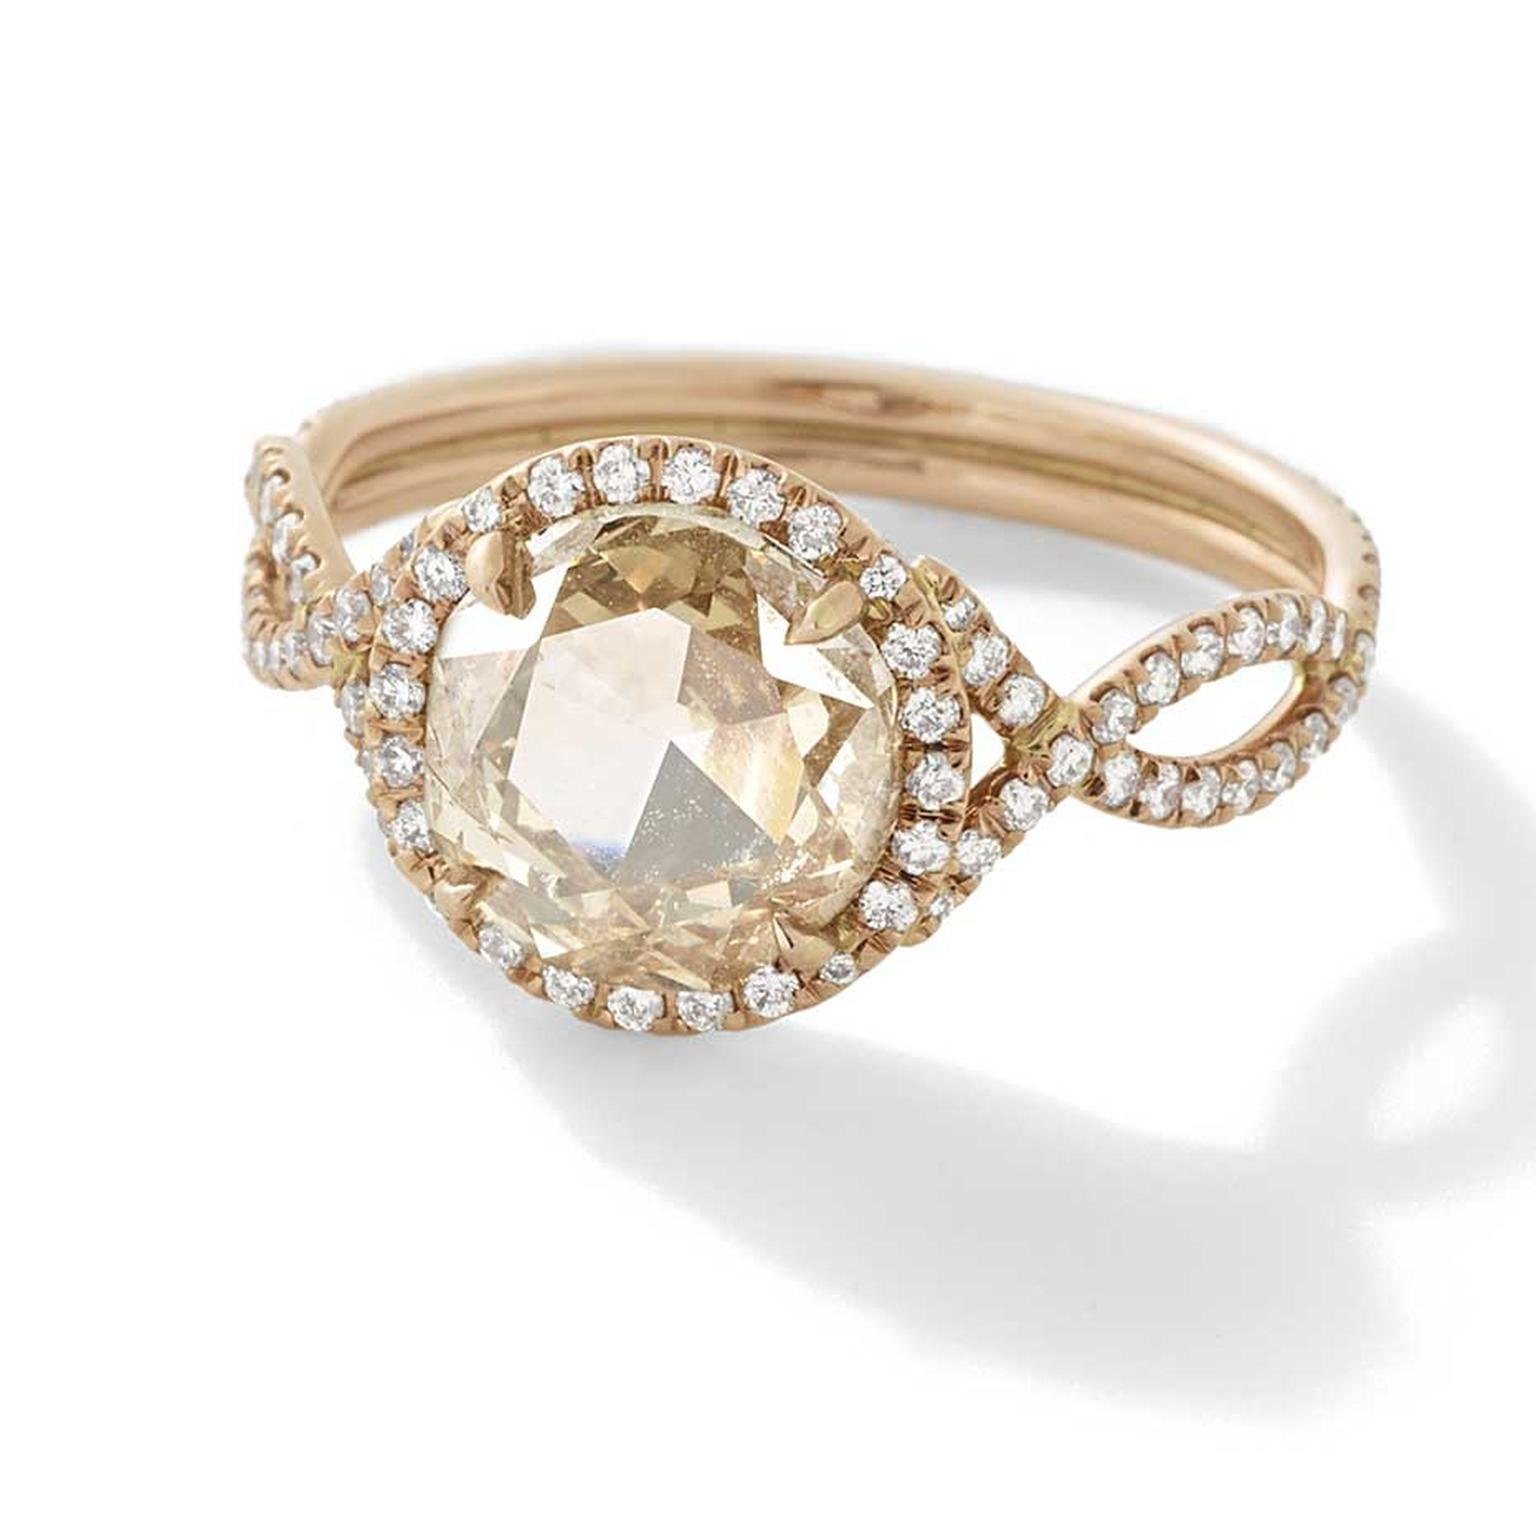 Monique Péan Mineraux engagement ring in recycled rose gold, set with an antique champagne rose cut diamond and diamond pavé ($39,690).